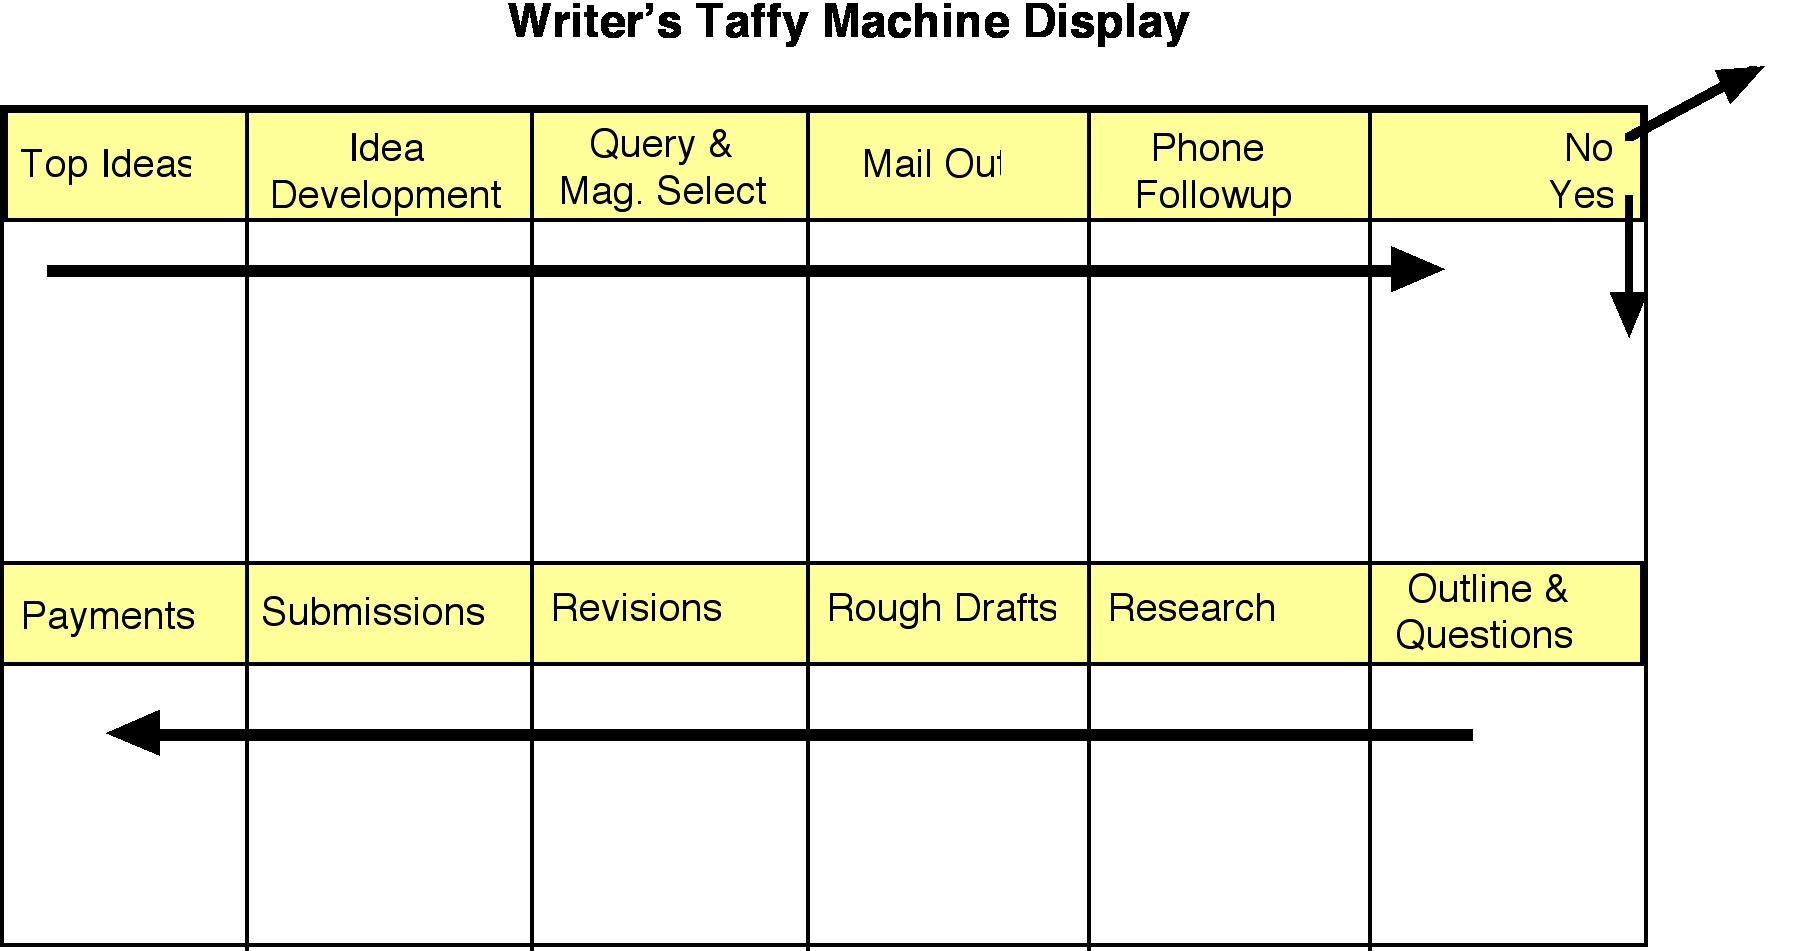 WritersTaffyMachine